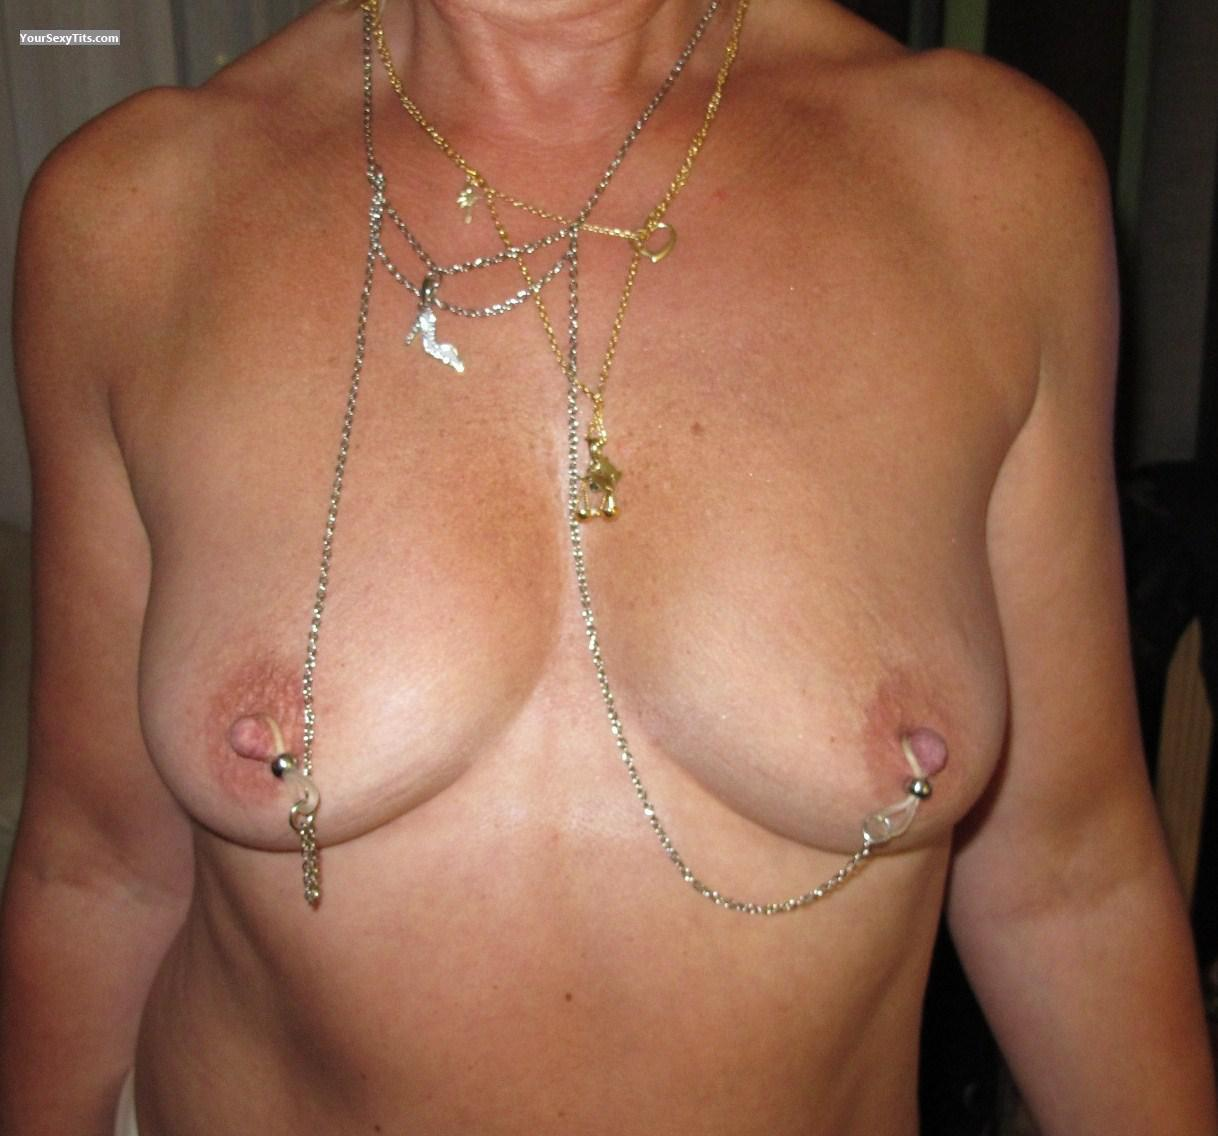 Tit Flash: Medium Tits - Cadoume from France